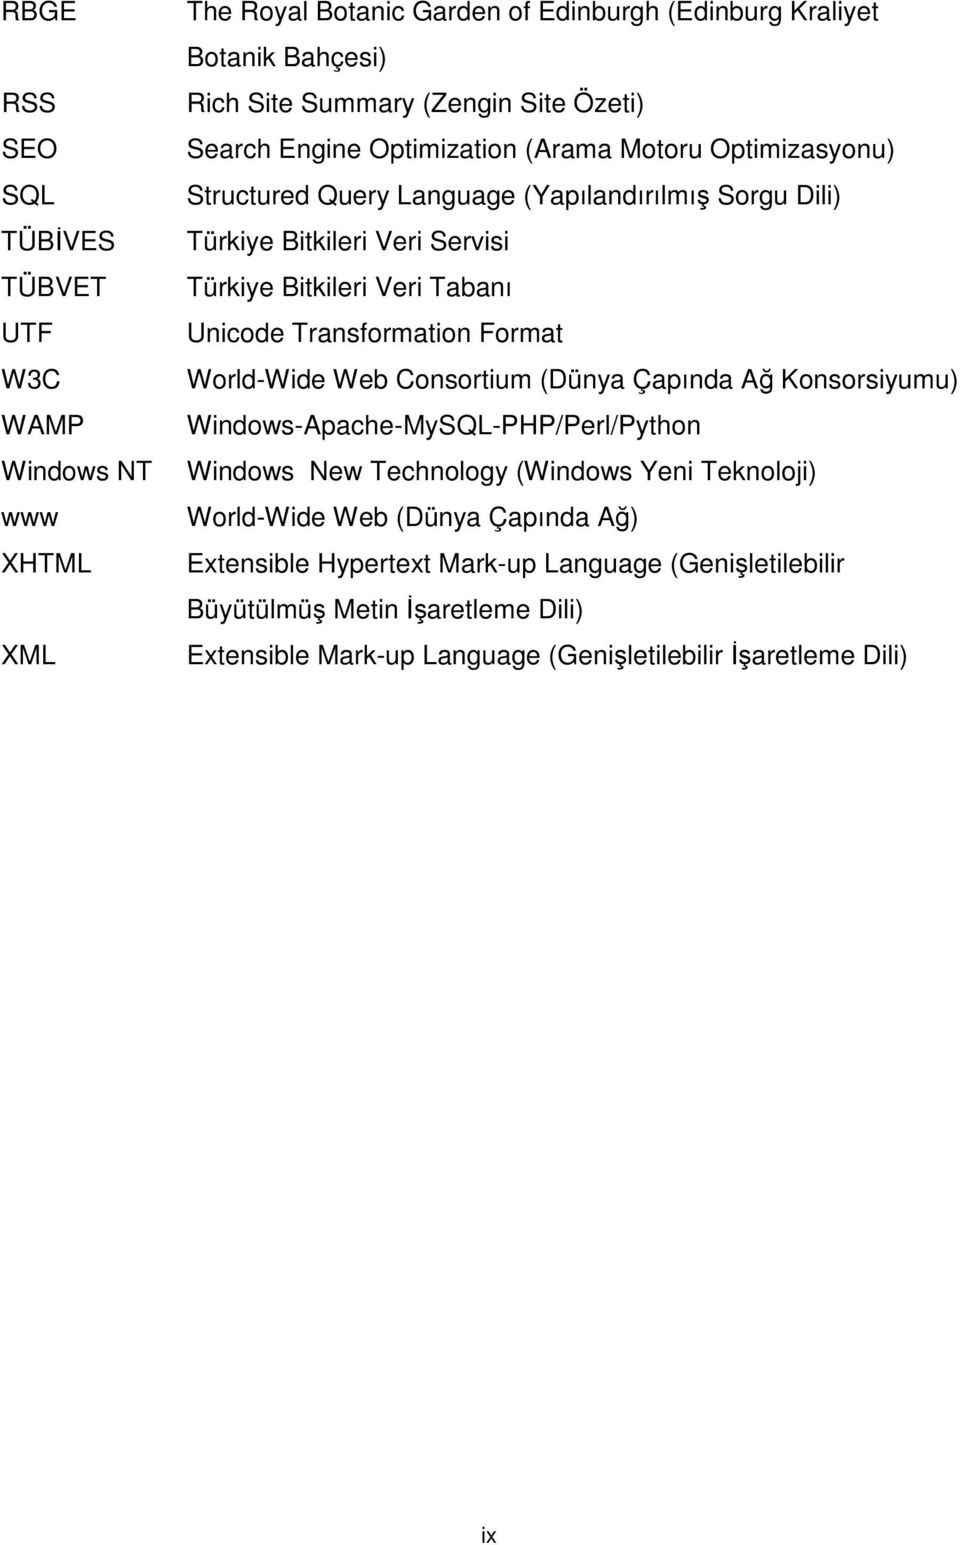 Unicode Transformation Format World-Wide Web Consortium (Dünya Çapında Ağ Konsorsiyumu) Windows-Apache-MySQL-PHP/Perl/Python Windows New Technology (Windows Yeni Teknoloji)